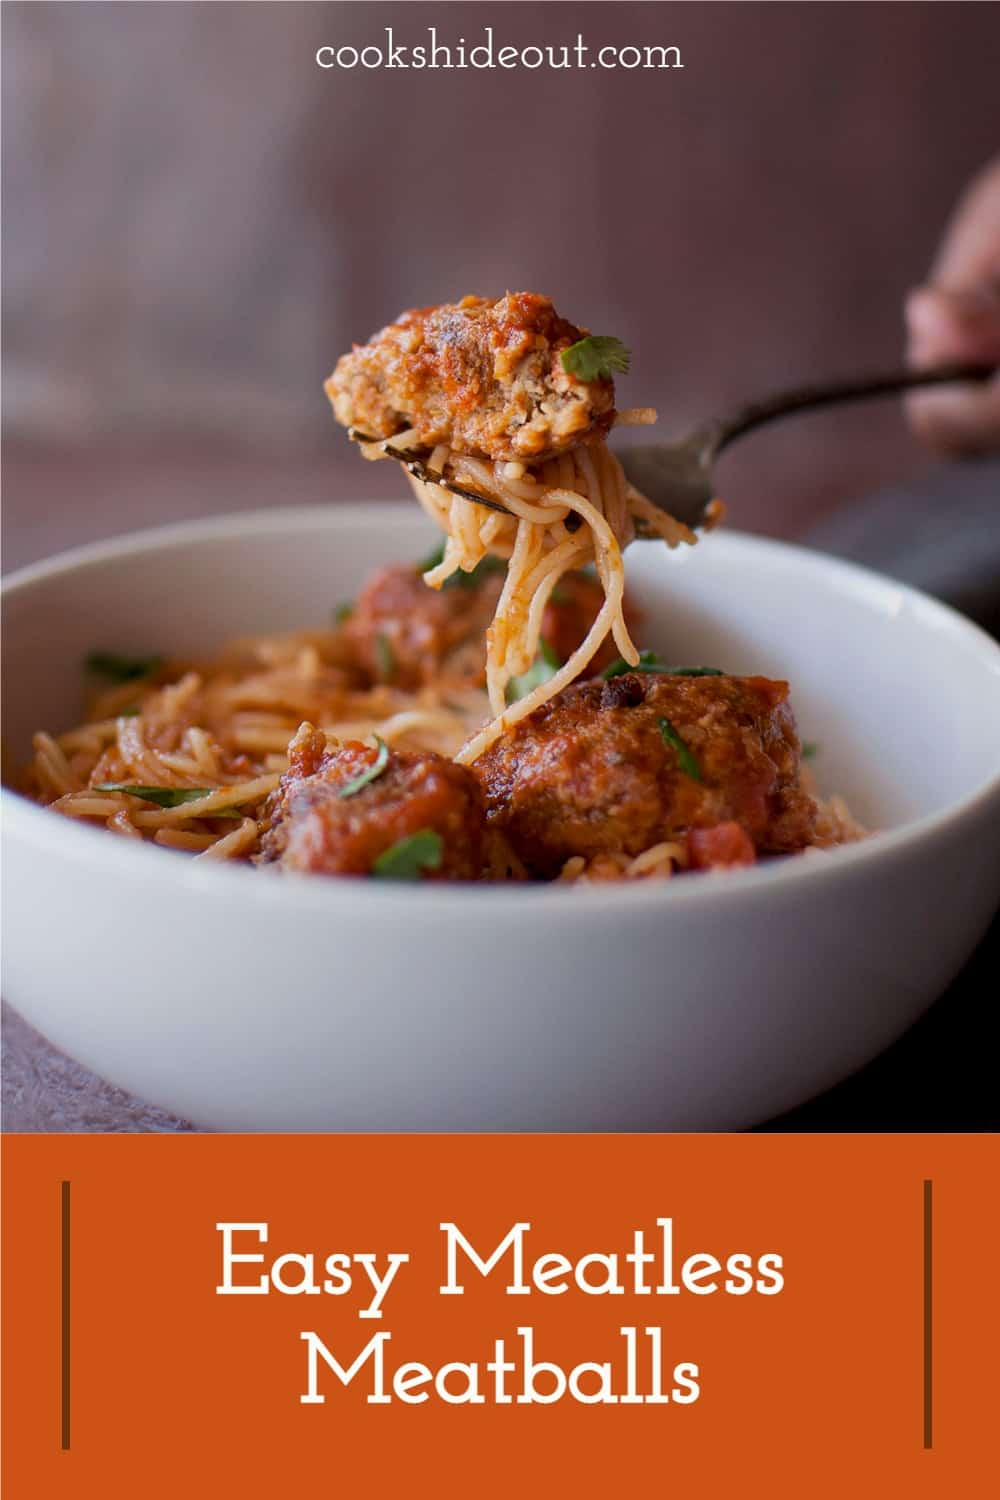 Spaghetti with Meatless Meatballs